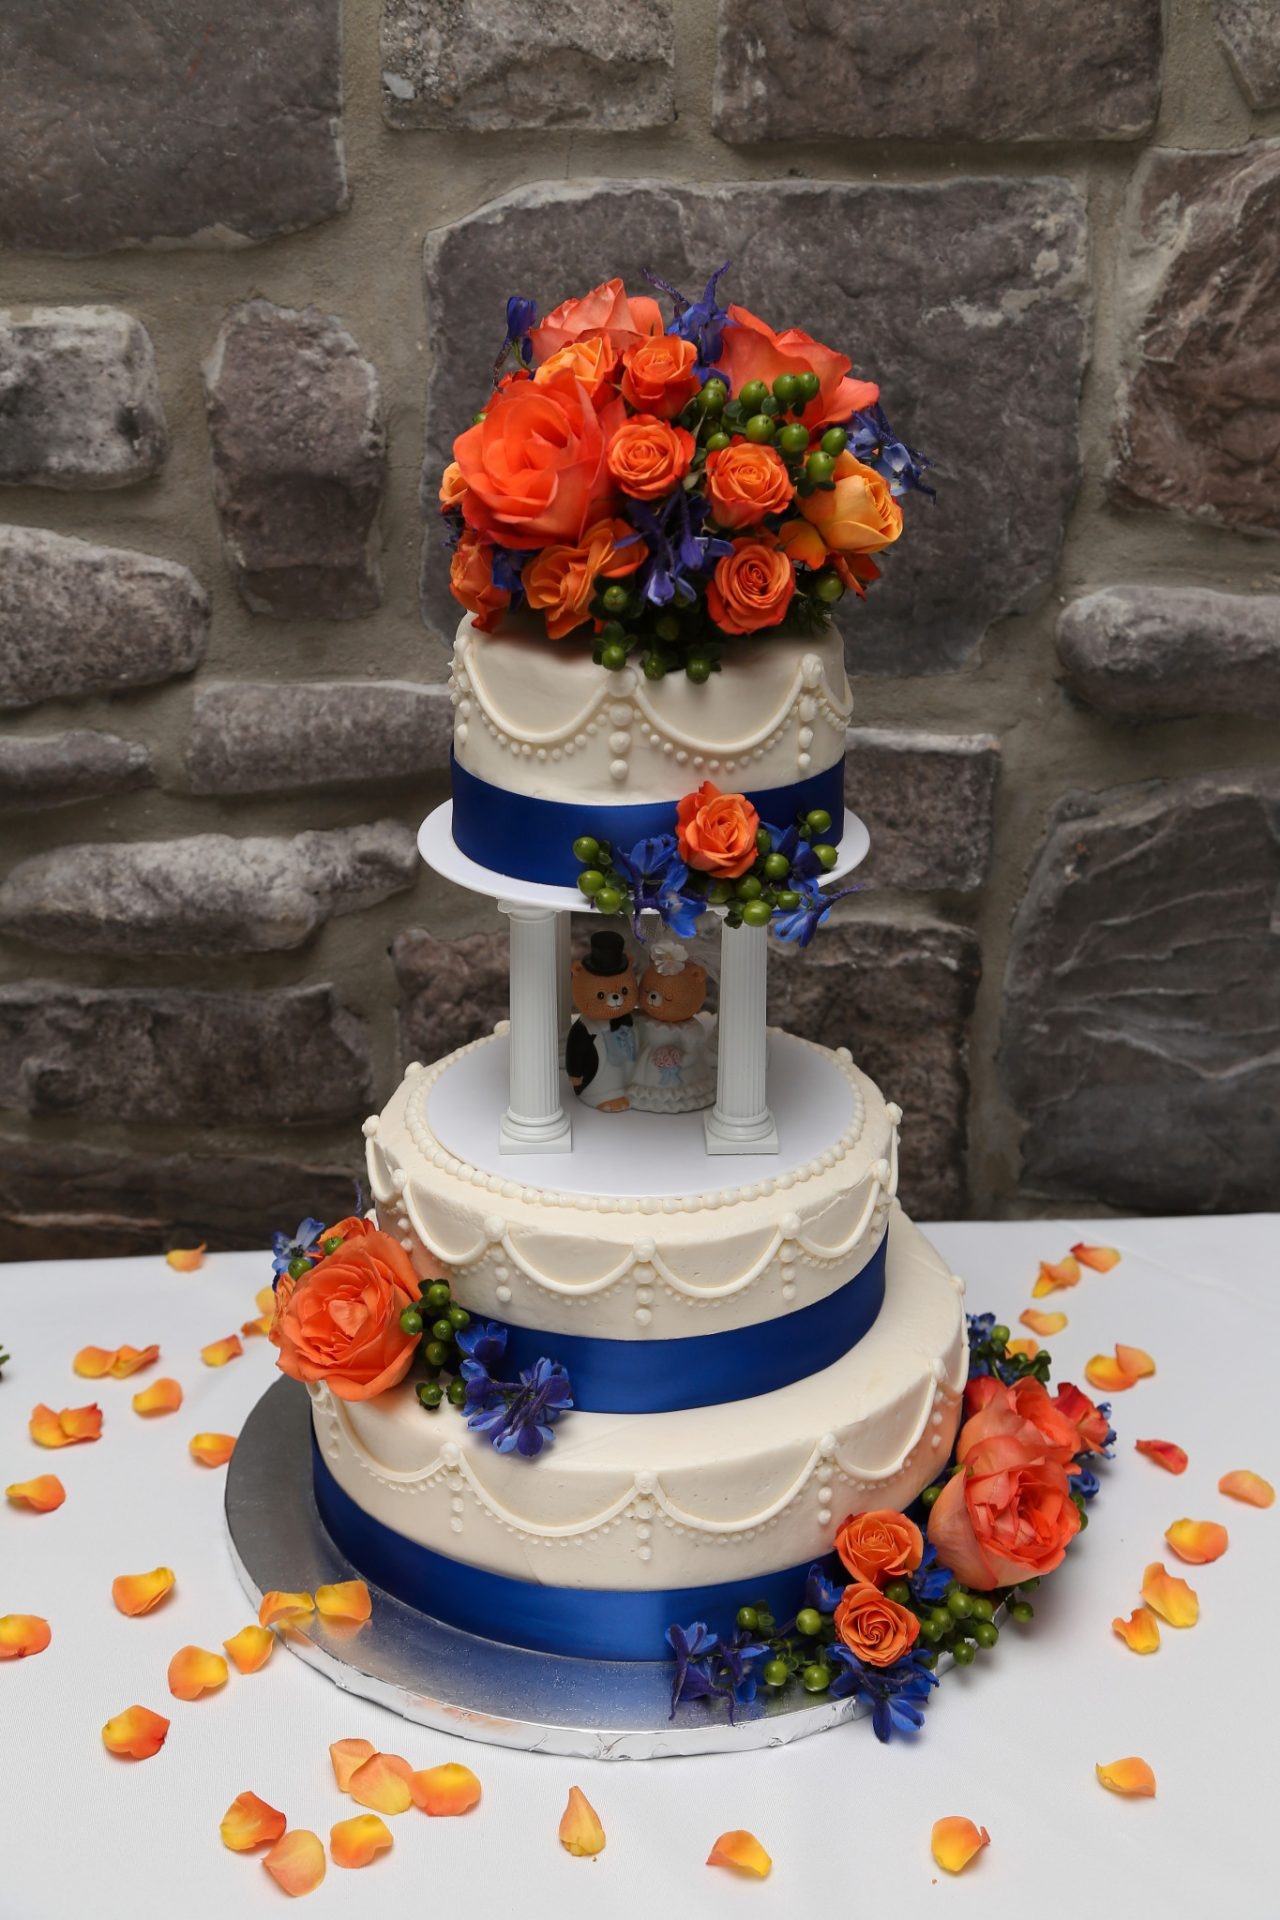 wedding cake with cream icing and pink, orange flowers and blue ribbon